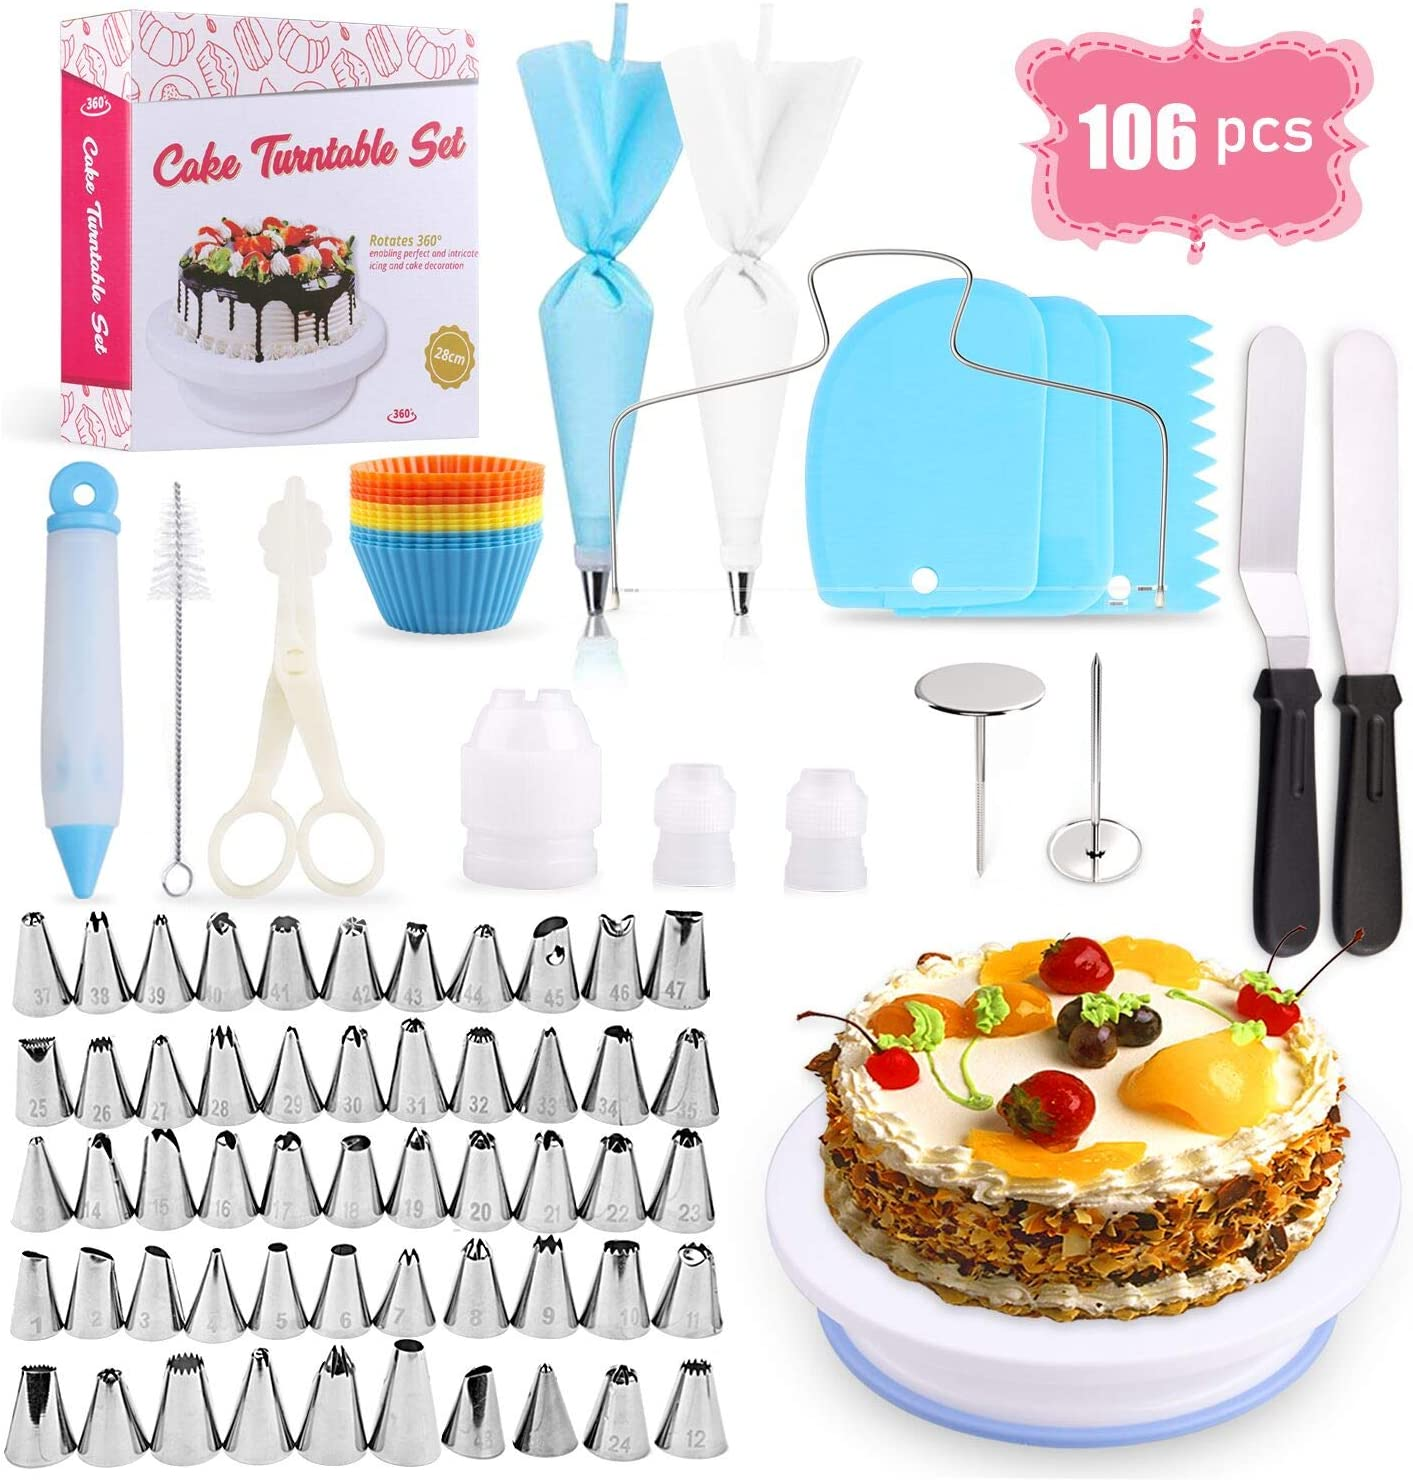 Cake Decorating Equipment, Omew 12pcs Cake Decorating Set Cupcake  Decorating Kit Baking Supplies with Nonslip Turntable Stand, 12 Numbered  Icing Tips